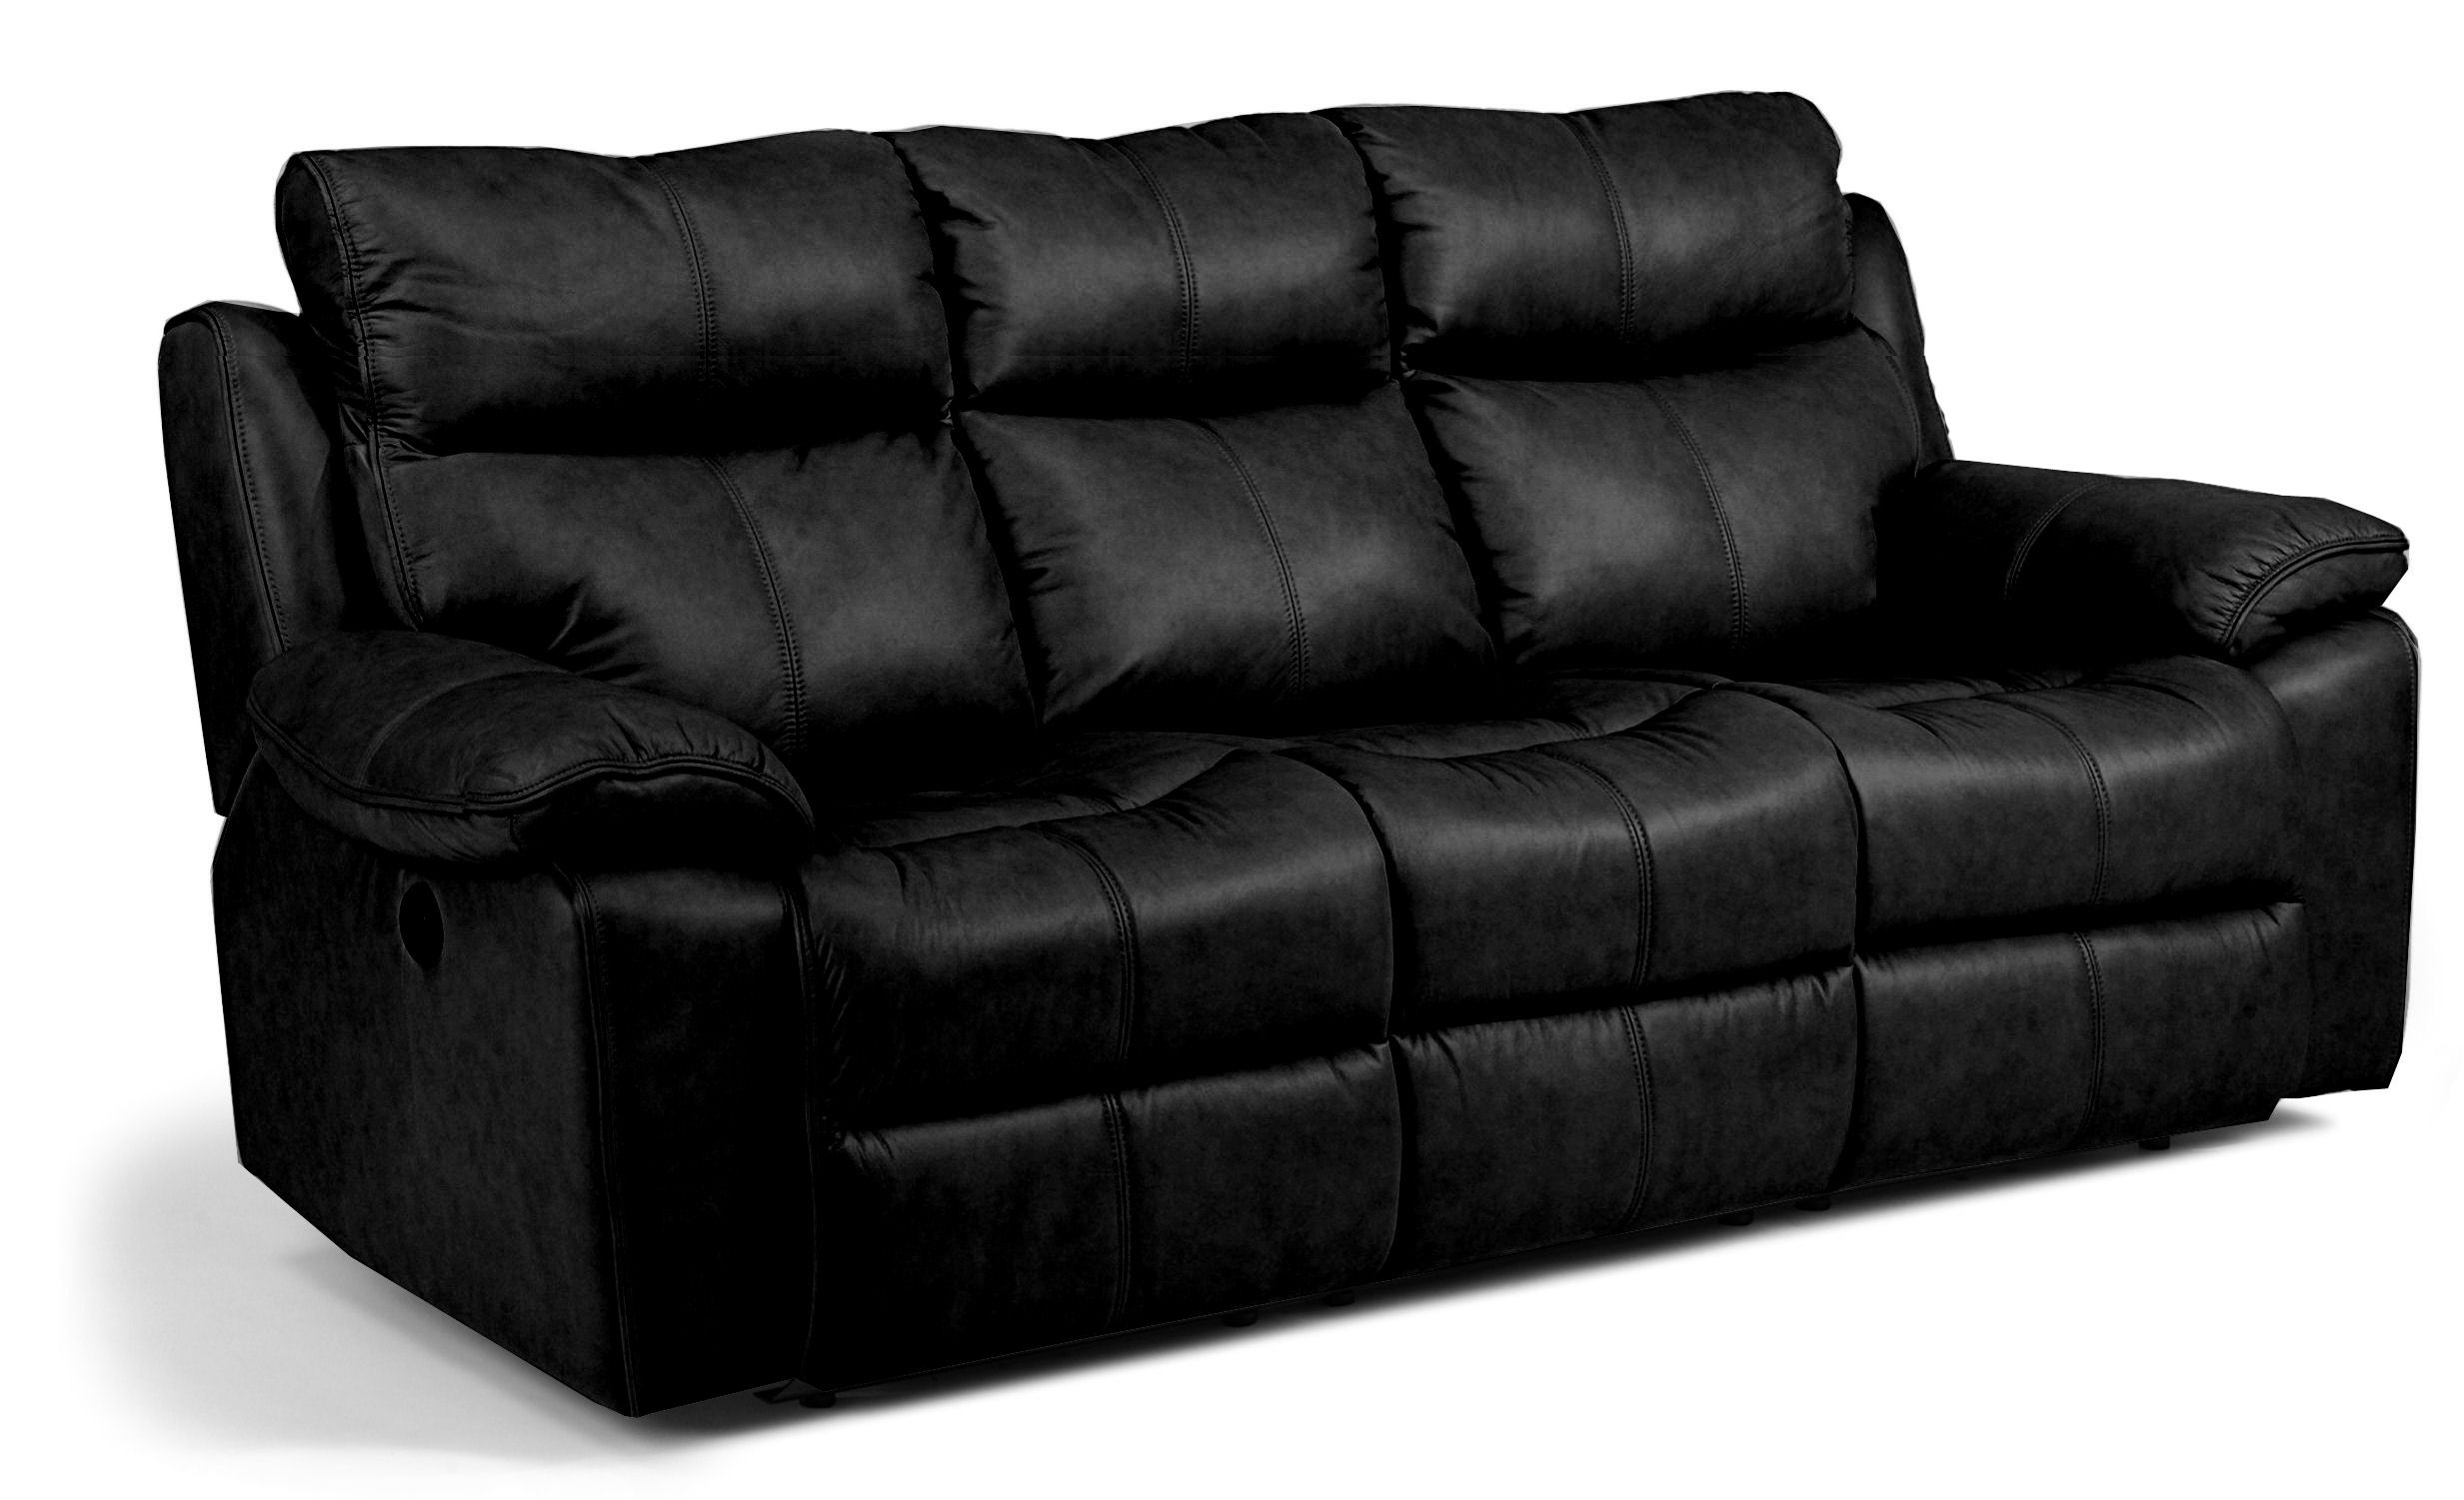 stunning bassett sofa reviews model-Inspirational Bassett sofa Reviews Design